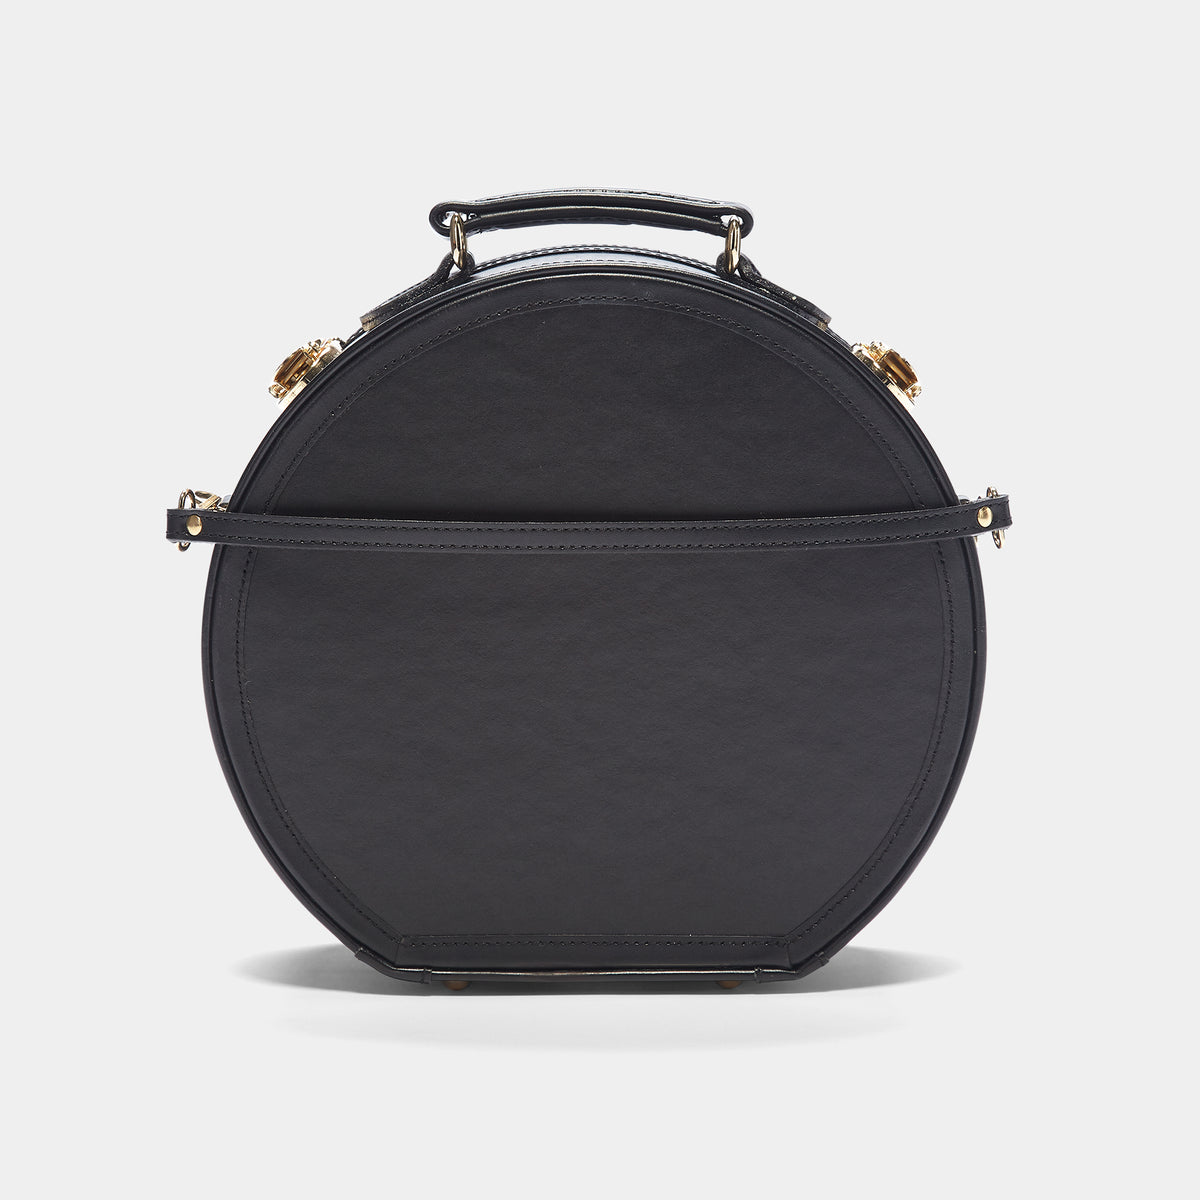 The alice + olivia X SteamLine in Black - Hat Box Luggage - Exterior Back